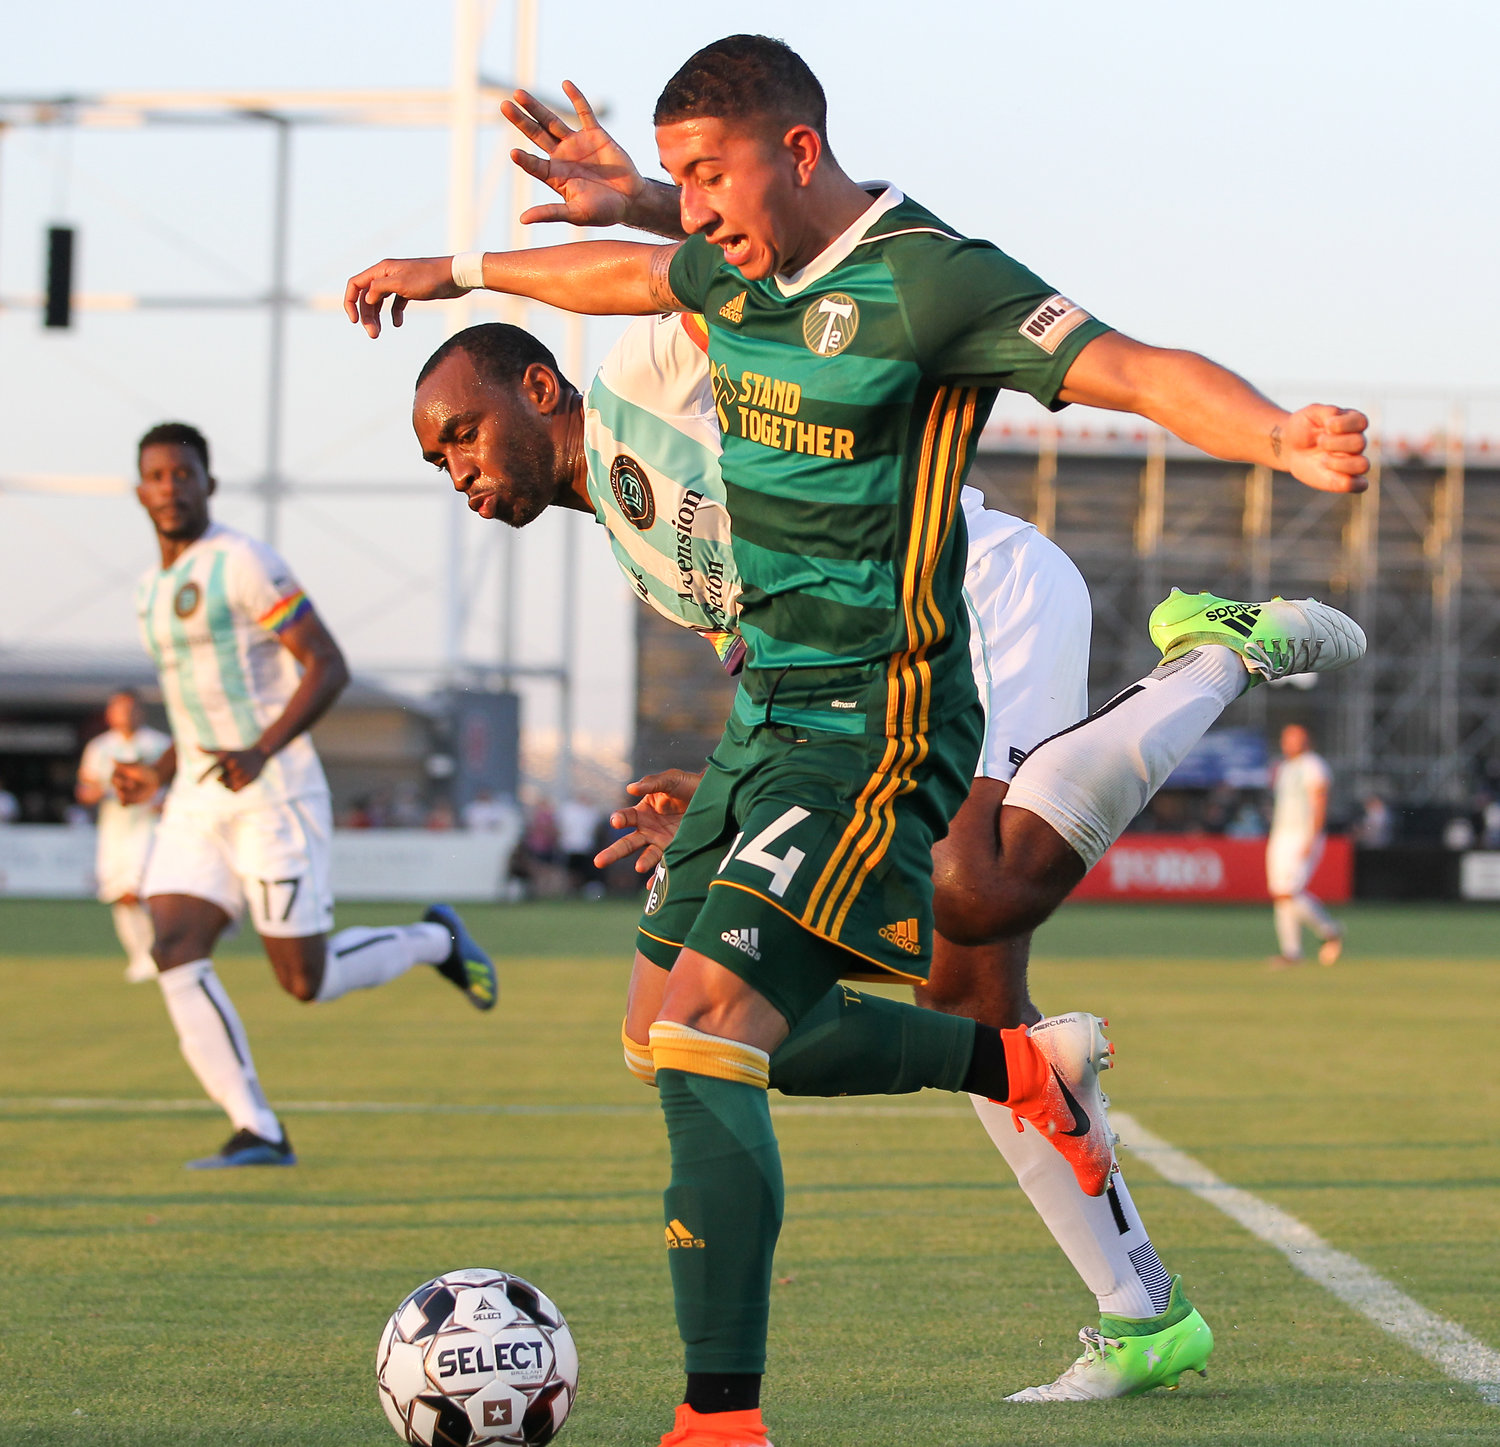 Portland Timbers 2 forward Marvin Loría (44) works against Austin Bold FC defender Amobi Okugo (15) during a USL Championship soccer game between Austin Bold FC and the Portland Timbers 2 on Saturday, June 8, 2019 at Bold Stadium in Austin, Texas.